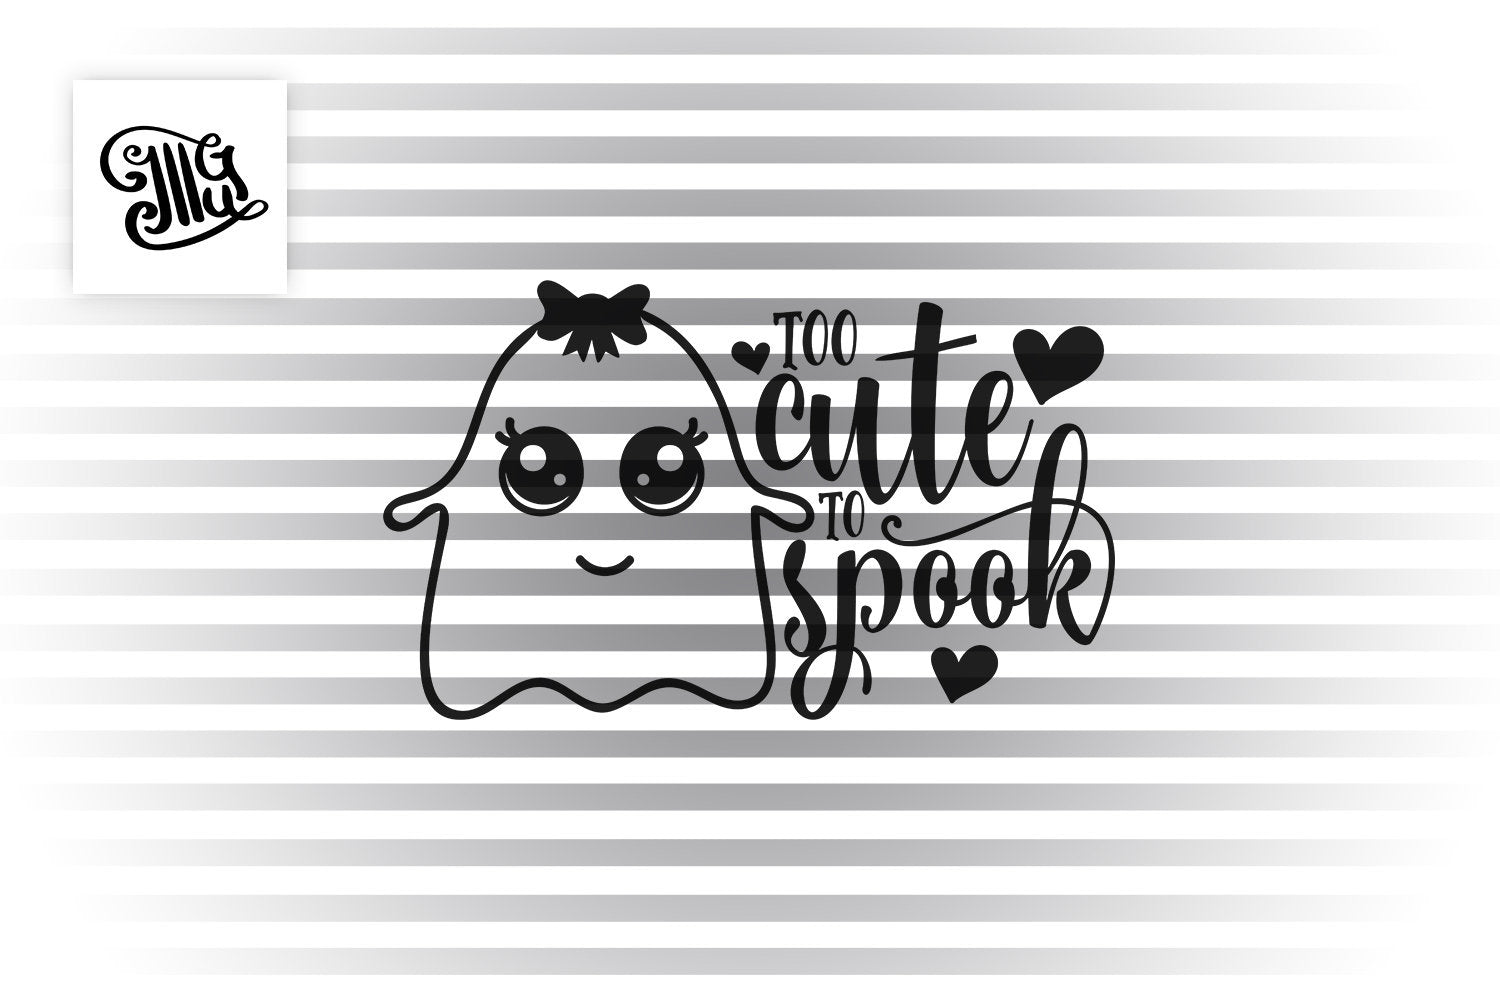 Too Cute To Spook Svg Halloween Girl Svg Ghoul With Bow Svg Cute Gh Illustrator Guru